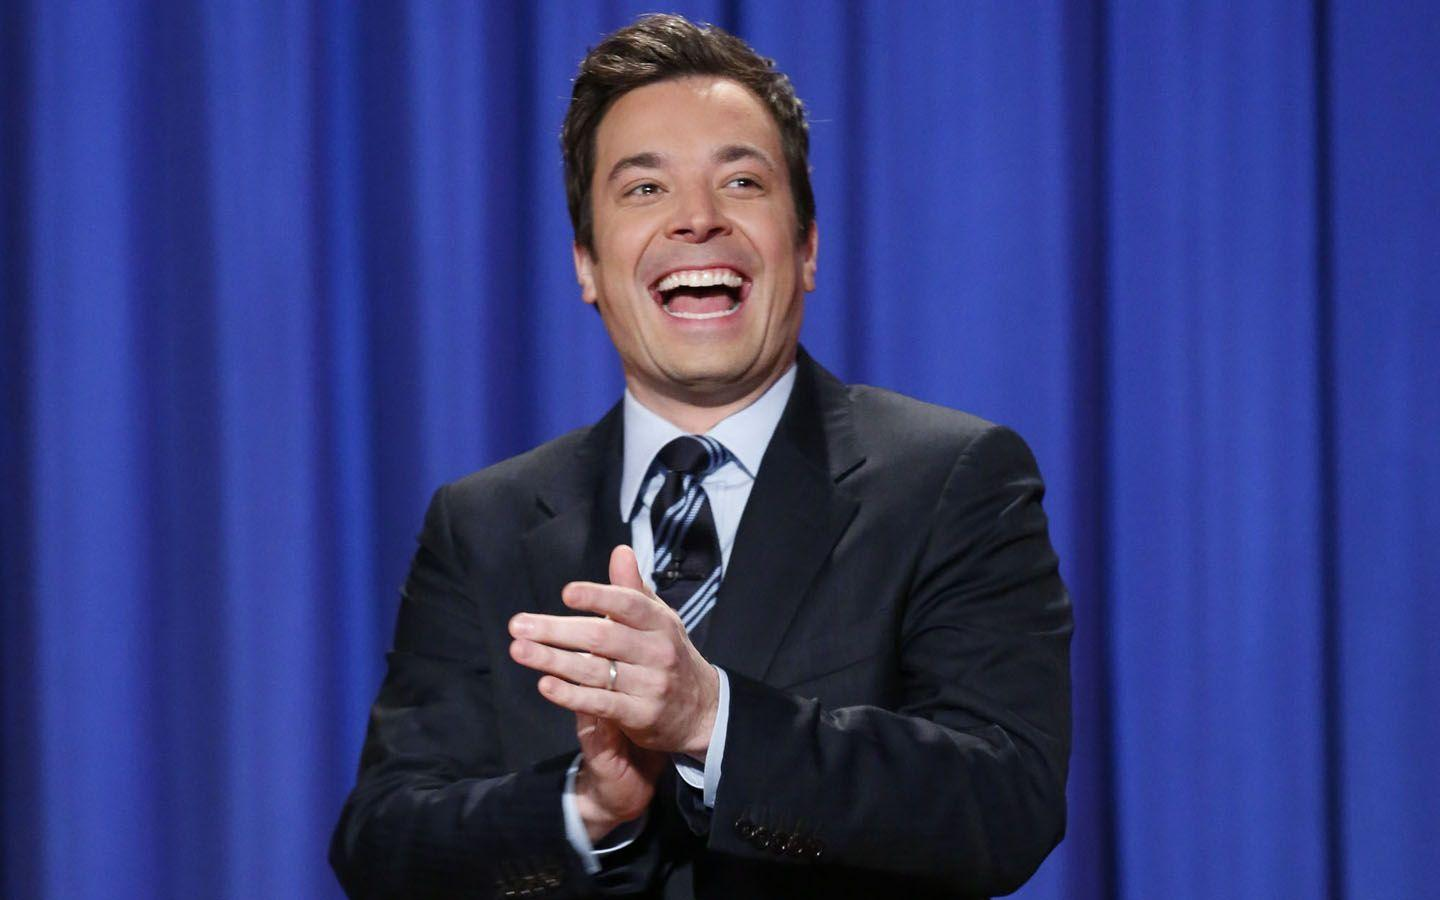 Jimmy Fallon laughing & clapping